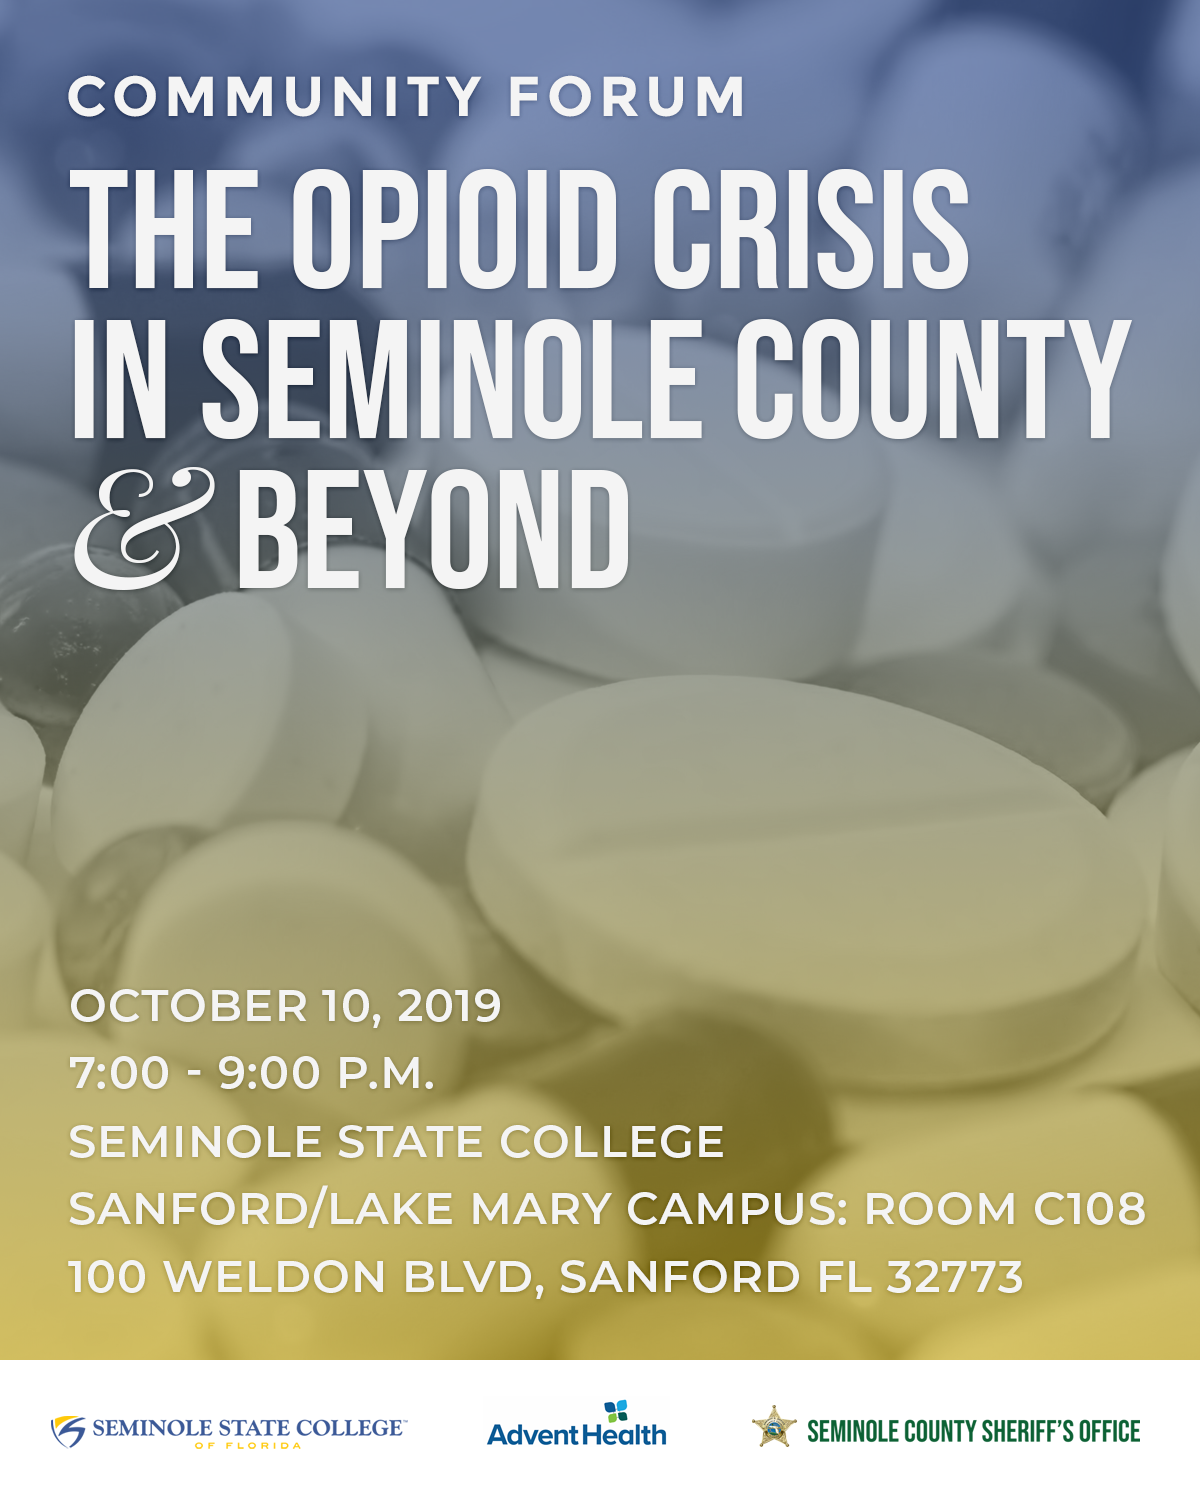 Seminole County Sheriff S Office To Host Opioid Community Forum At Seminole State College Greater Sanford Regional Chamber Of Commerce